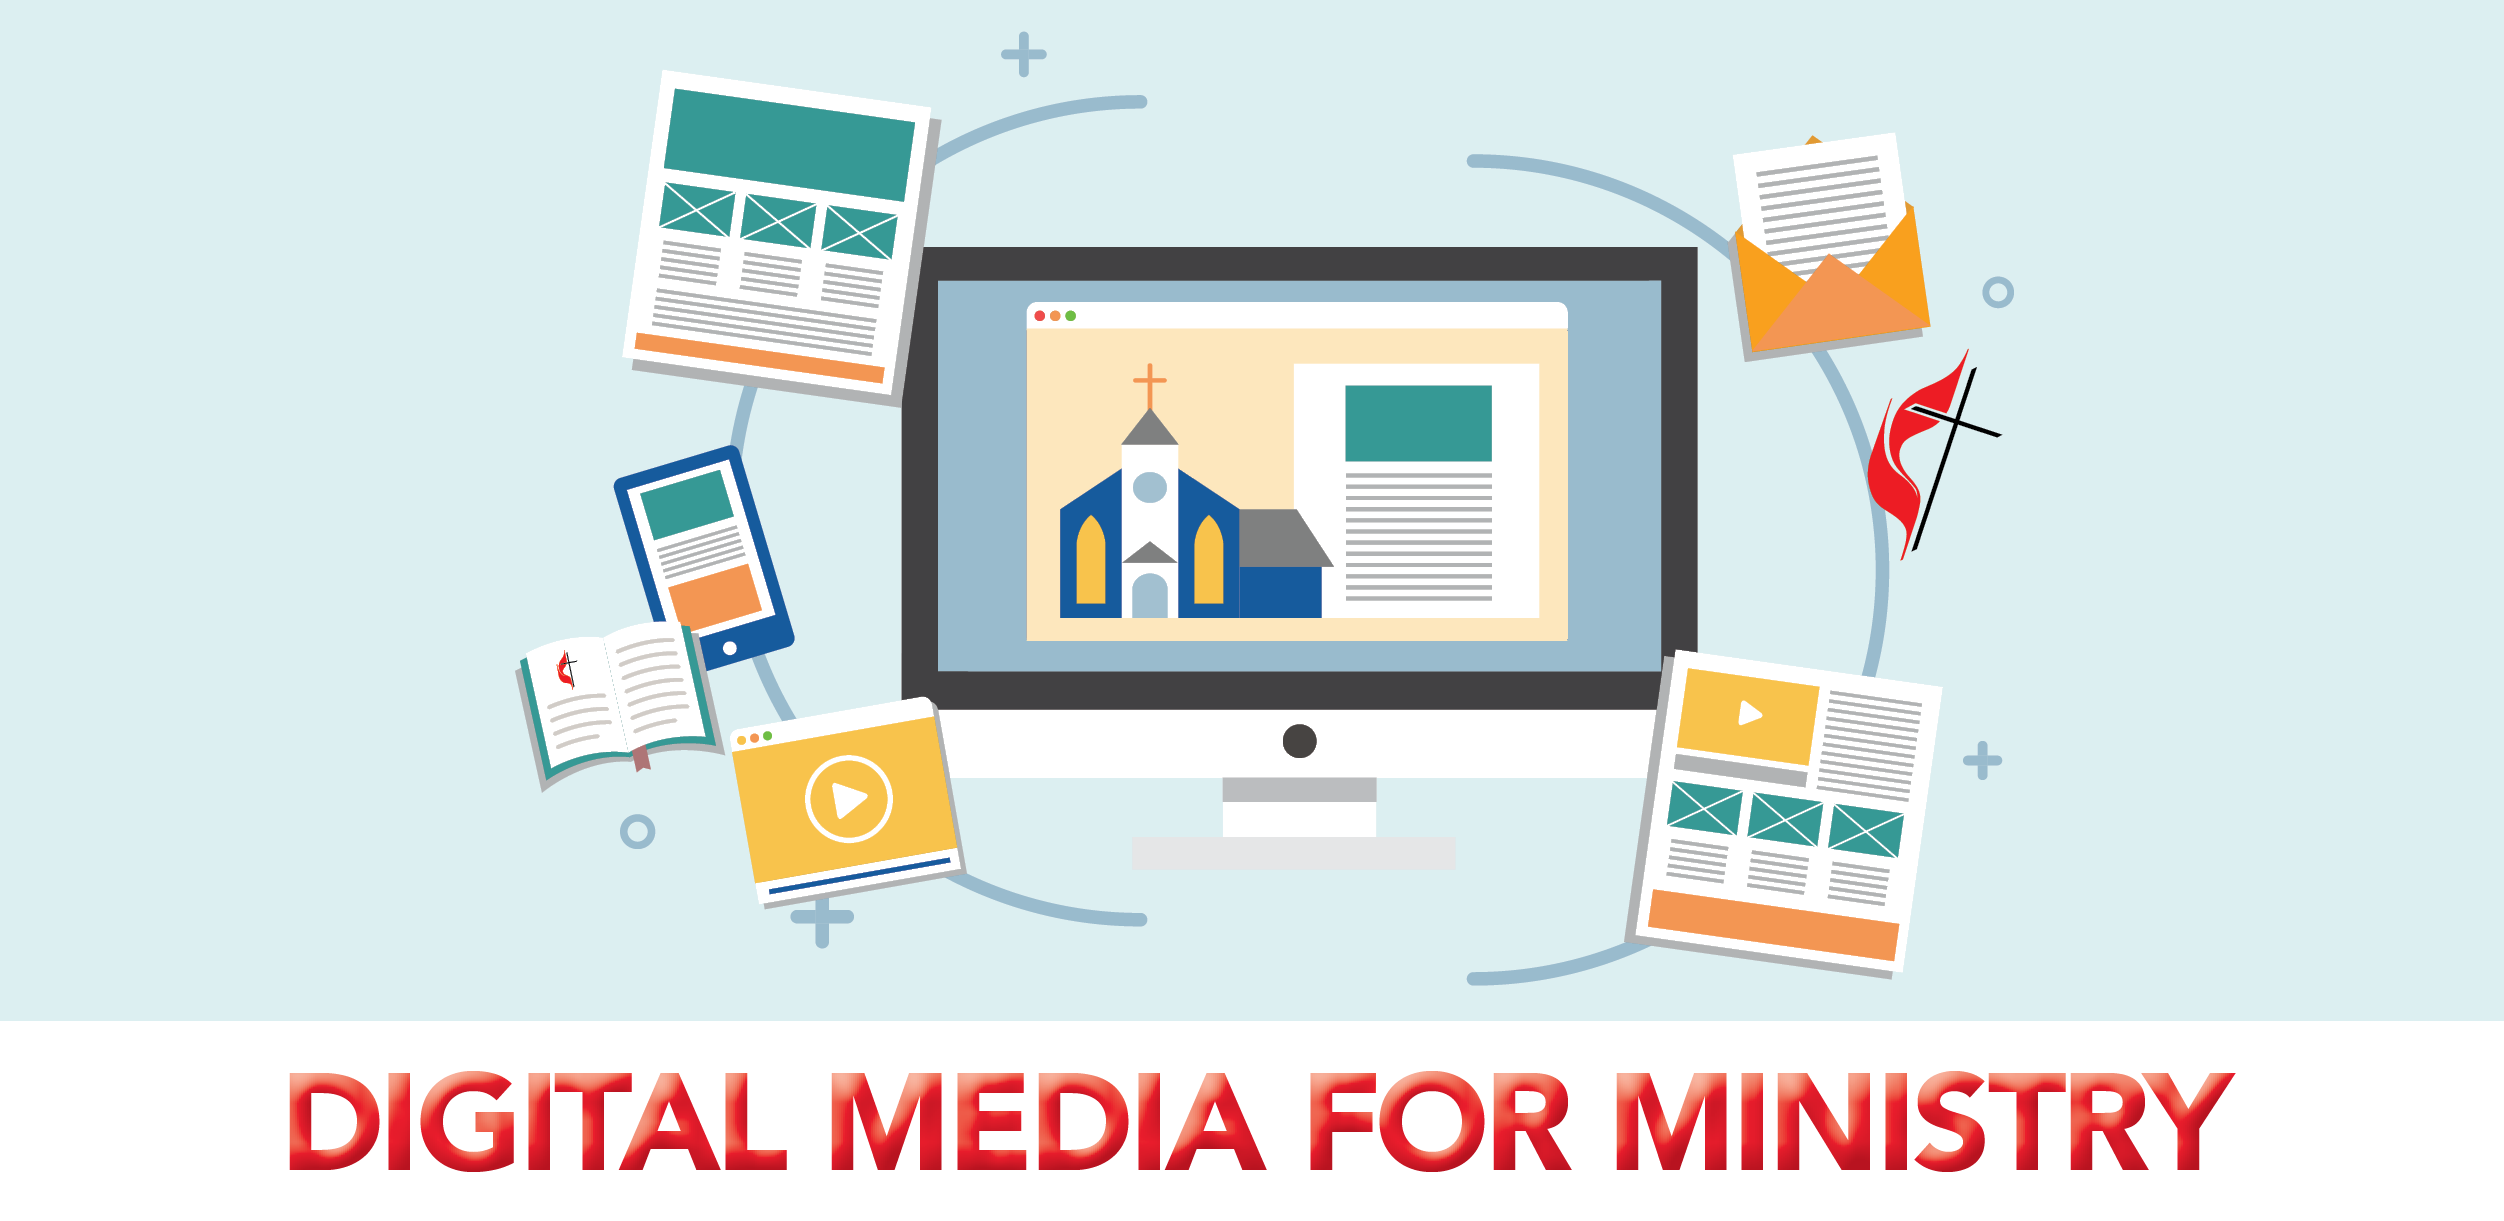 Digital Media for Ministry